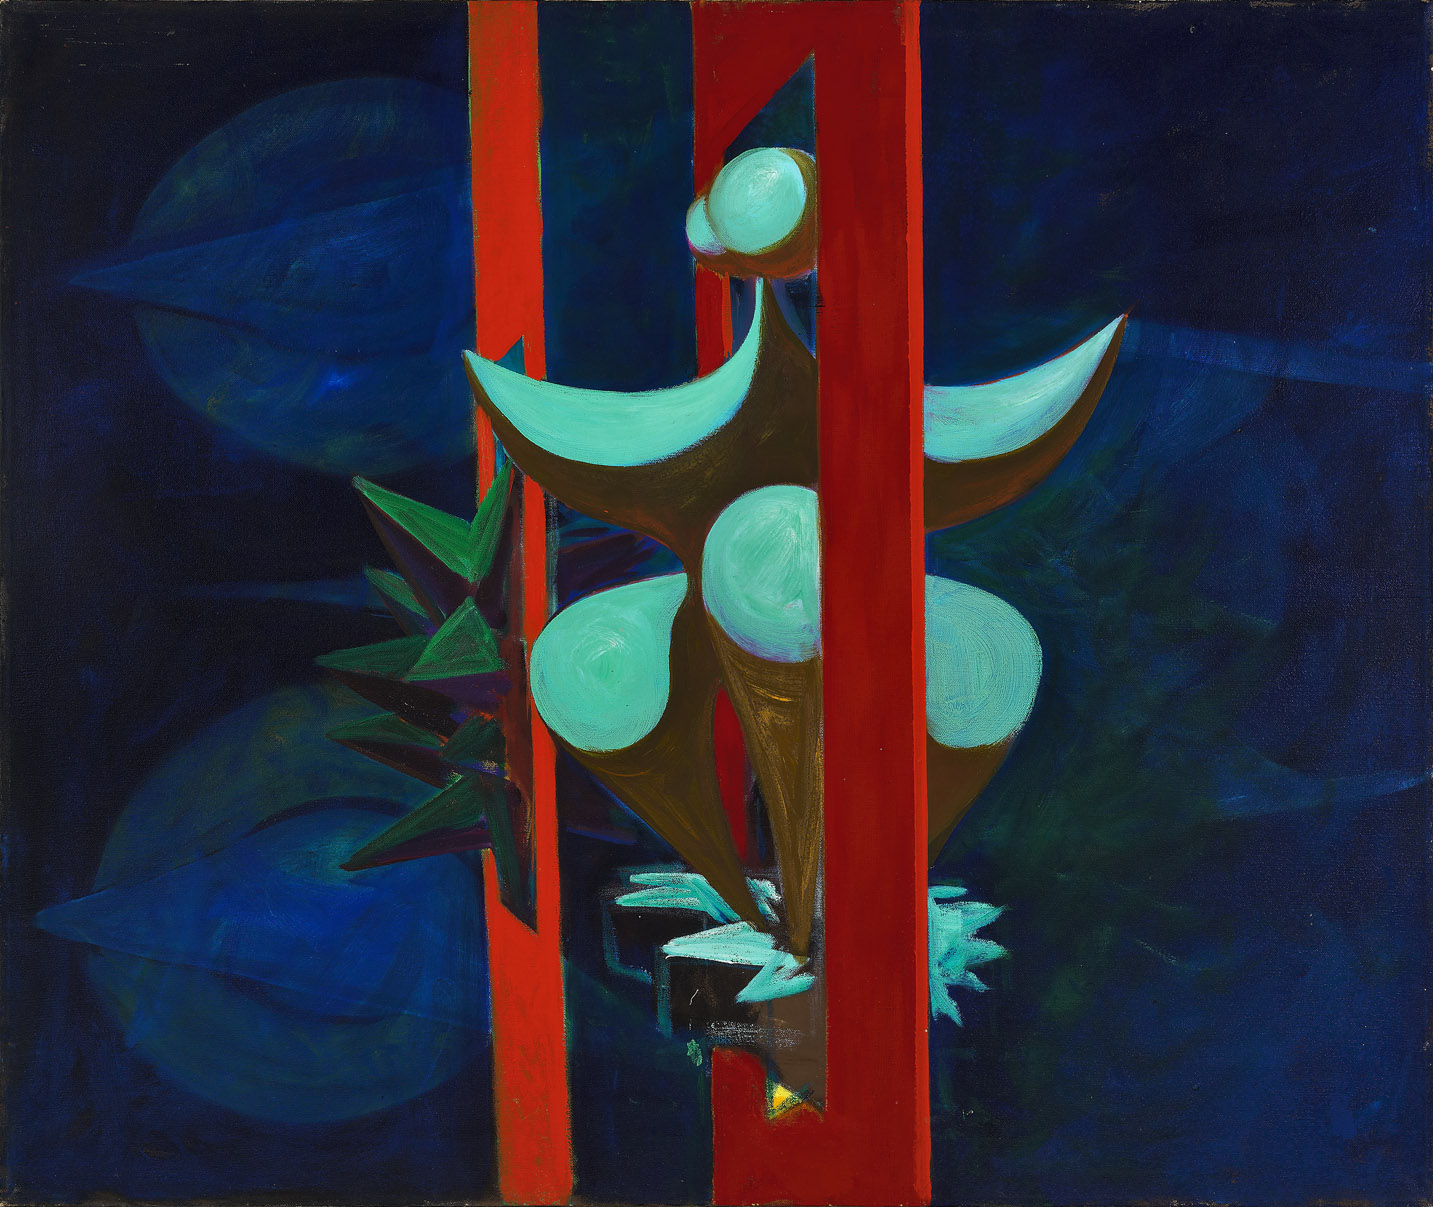 Untitled, Magical Forms , 1949  oil on canvas 30 x 36 inches; 76.2 x 91.4 centimeters